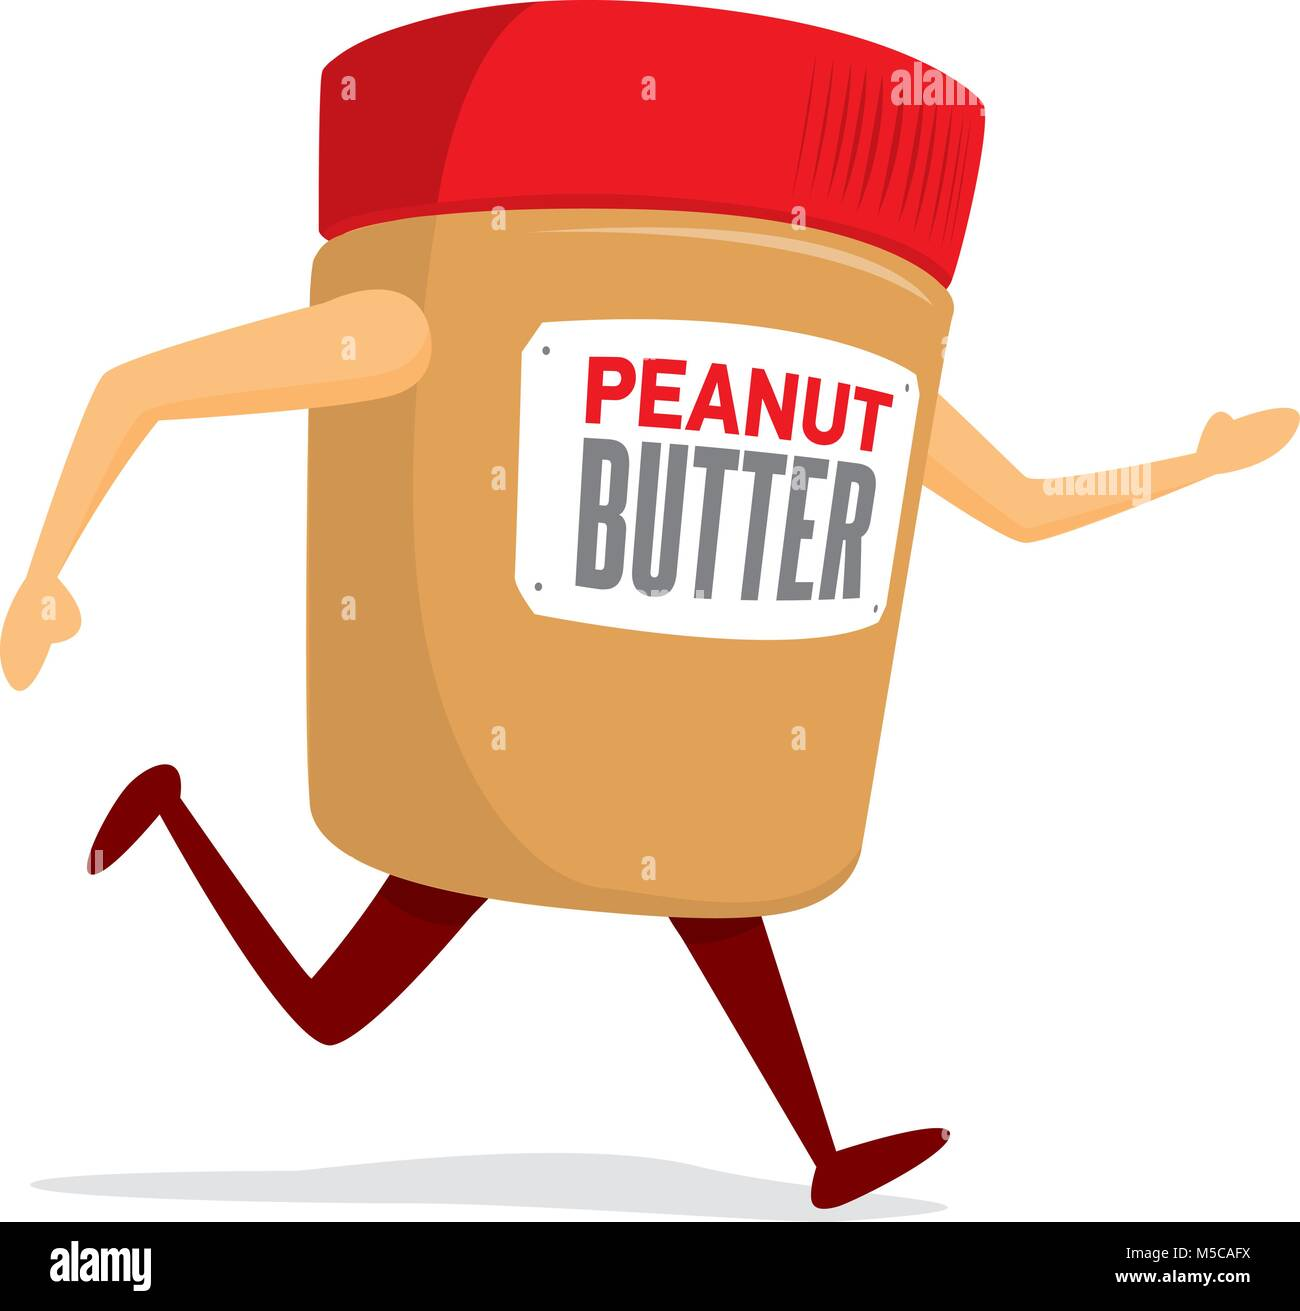 Jars of Peanut Butter and Jelly - Free Clip Art | Free clip art, Peanut  butter, Cute doodles